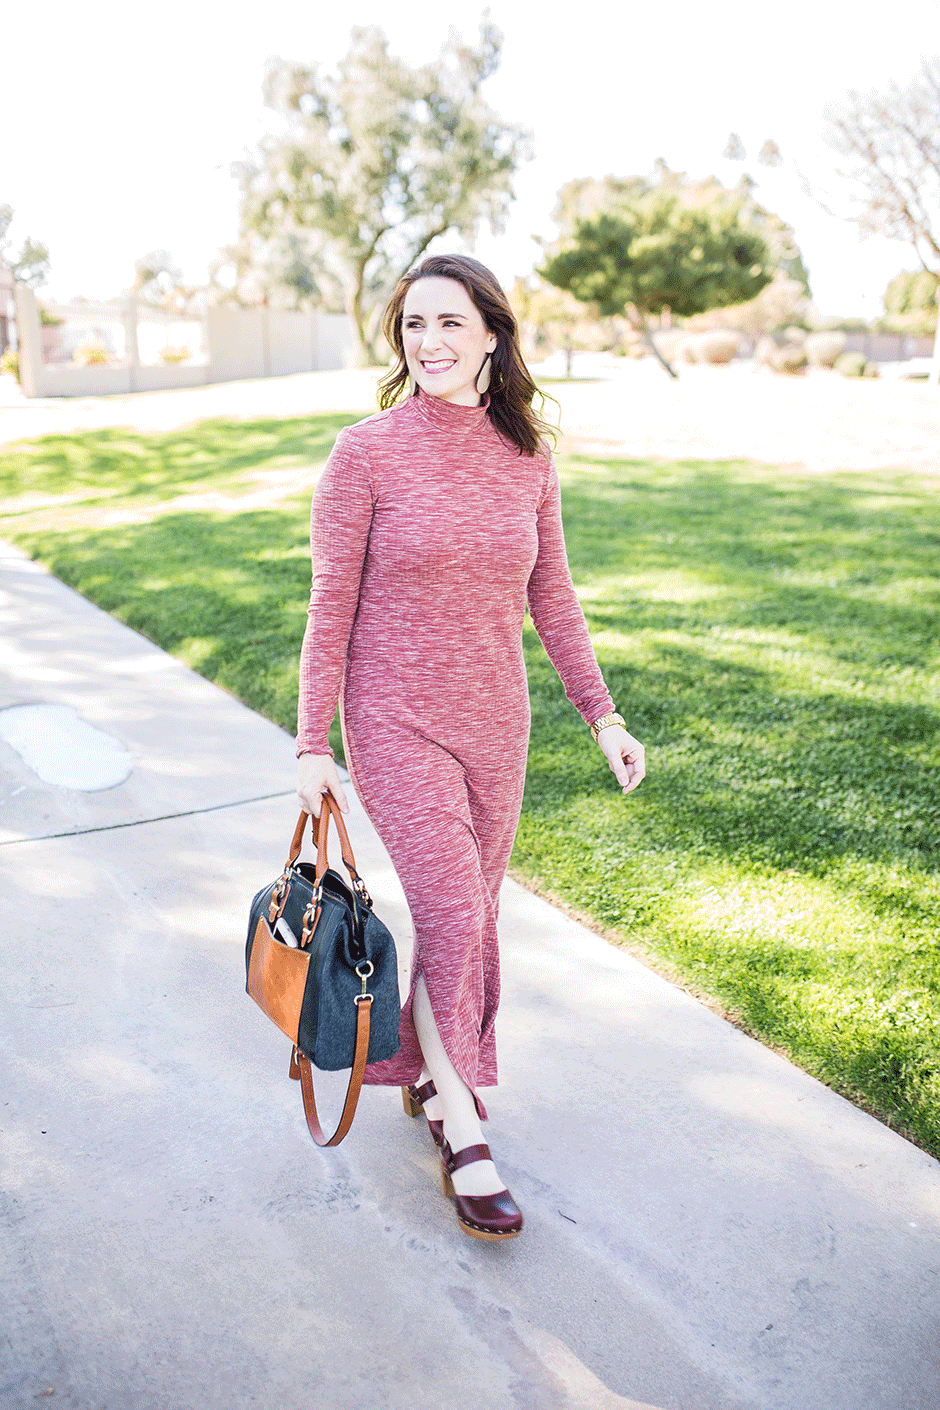 Looking for how to make a maxi dress?? This one is the perfect winter-to-spring transition outfit and even includes a sleeveless option! Sew one today!